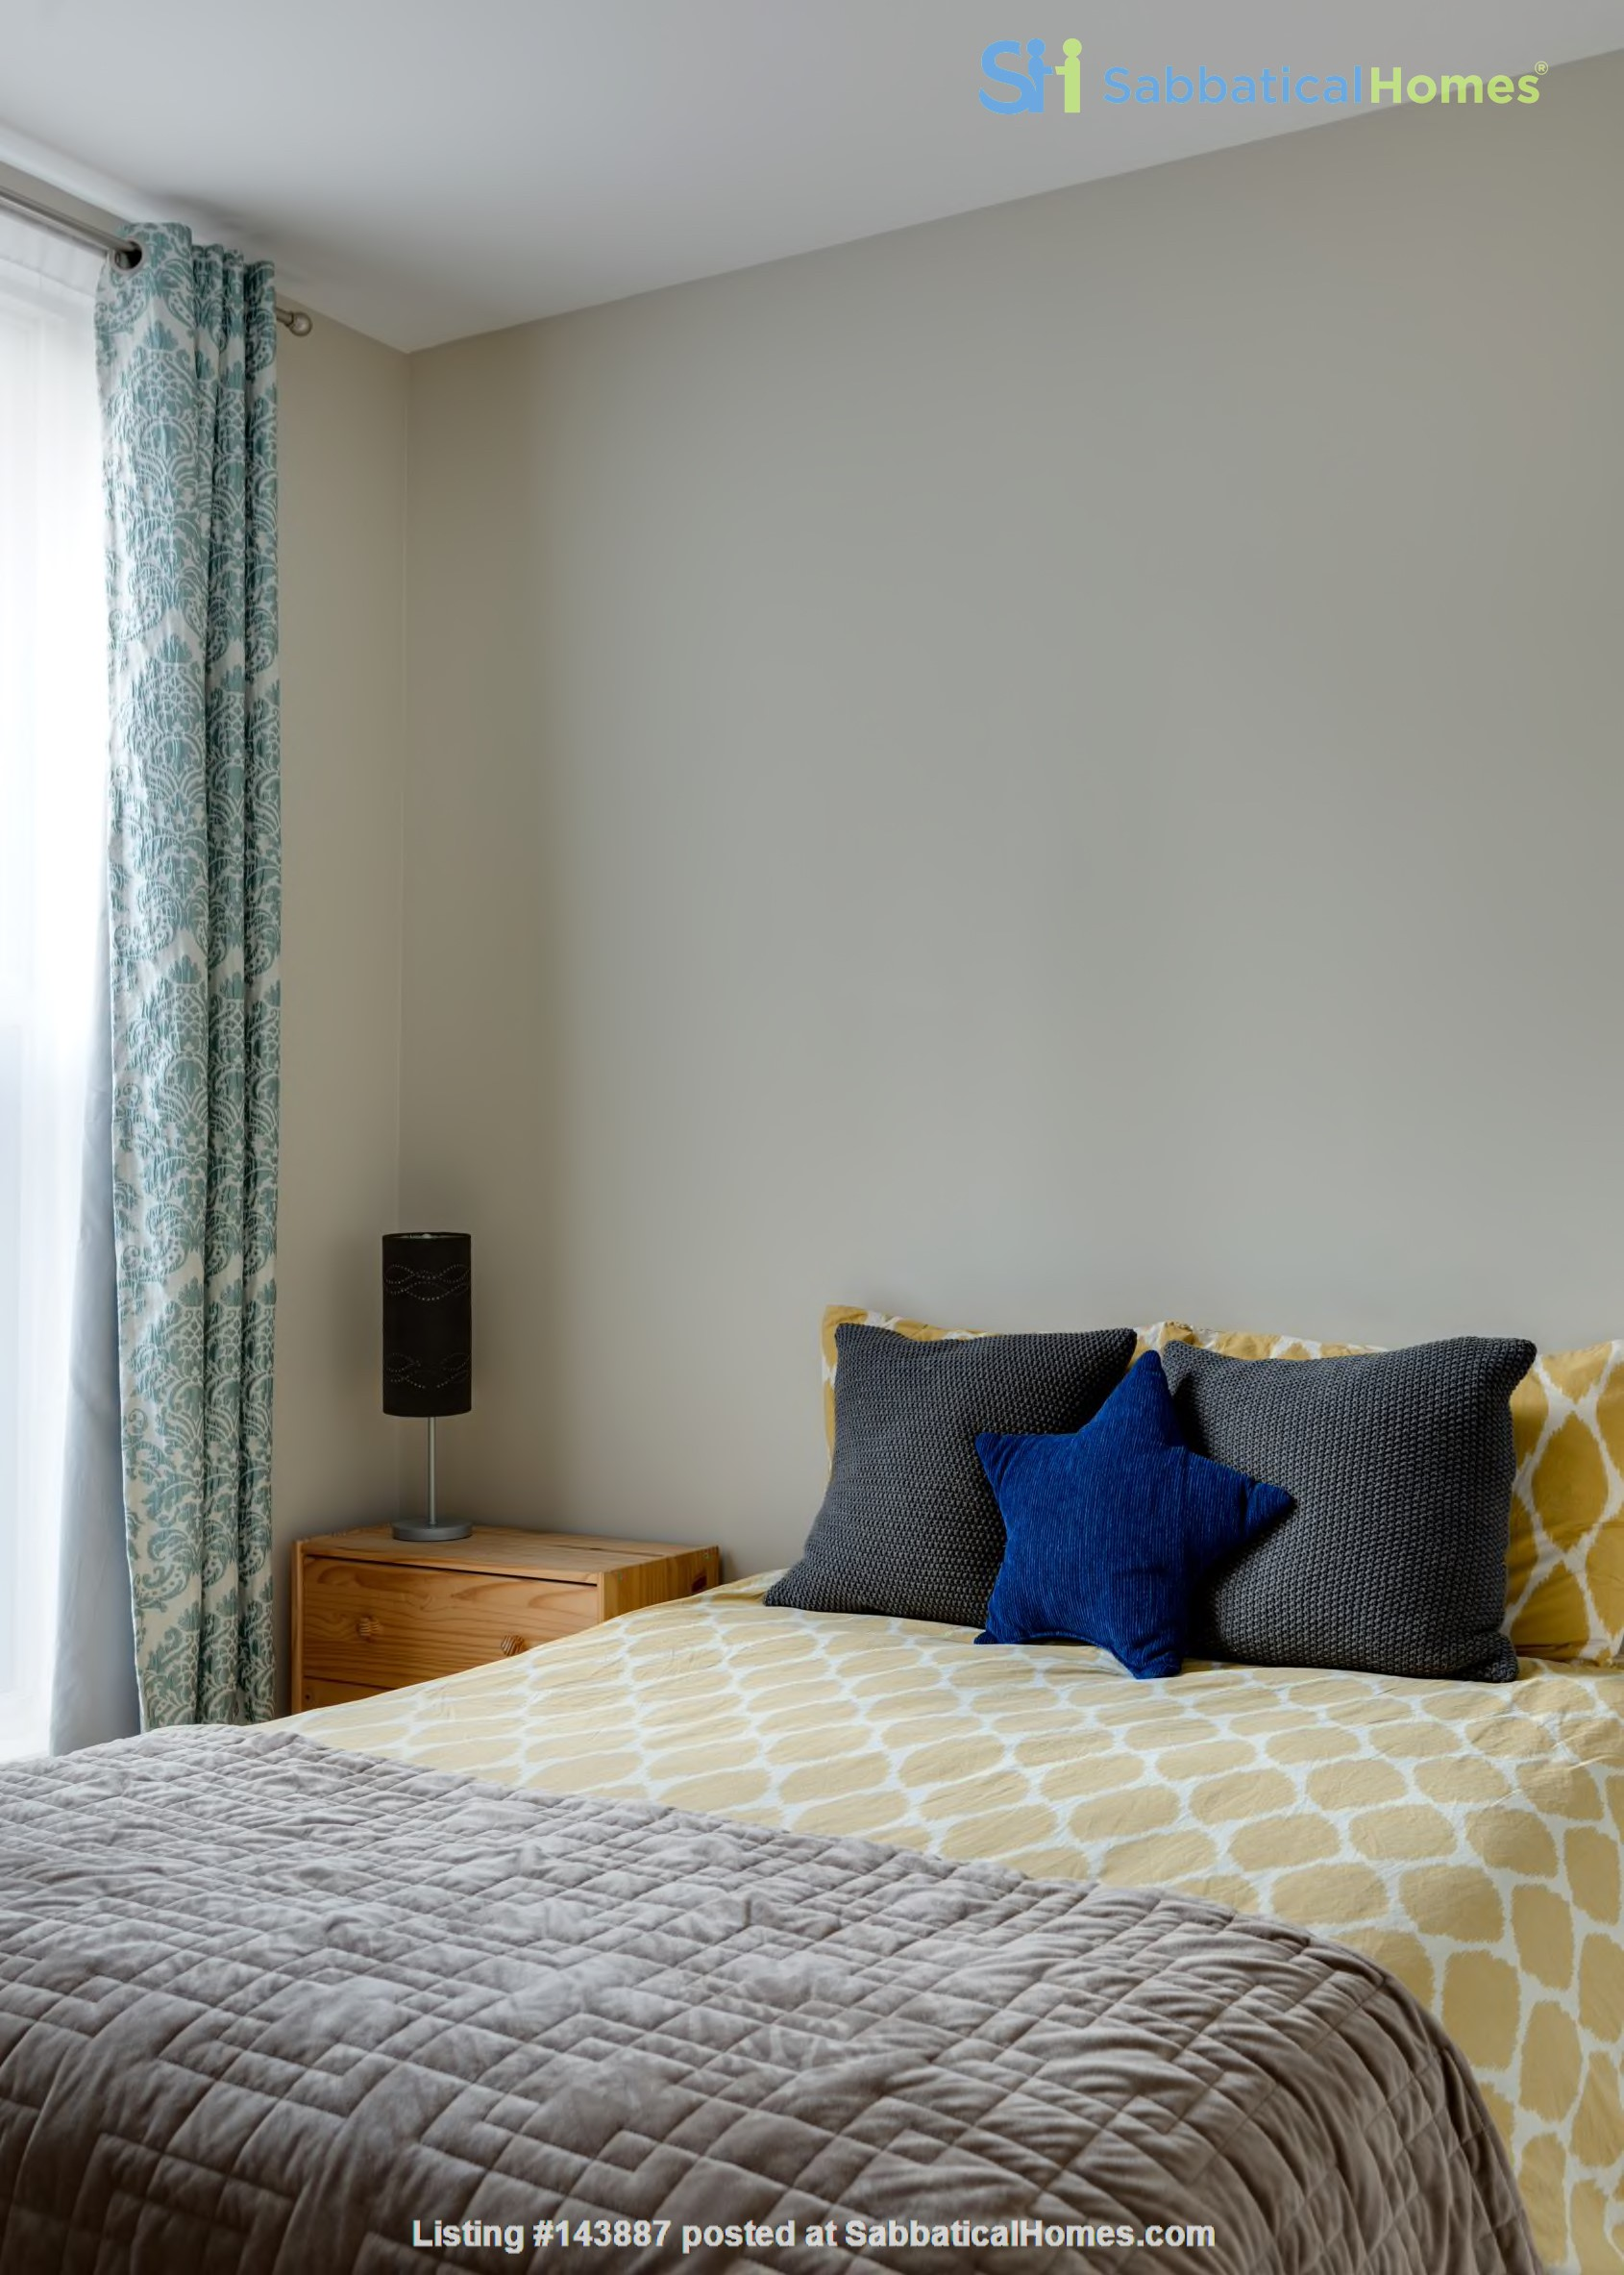 1BR in our gorgeous weekend brownstone in Fort Greene, Brooklyn Home Rental in Kings County, New York, United States 4